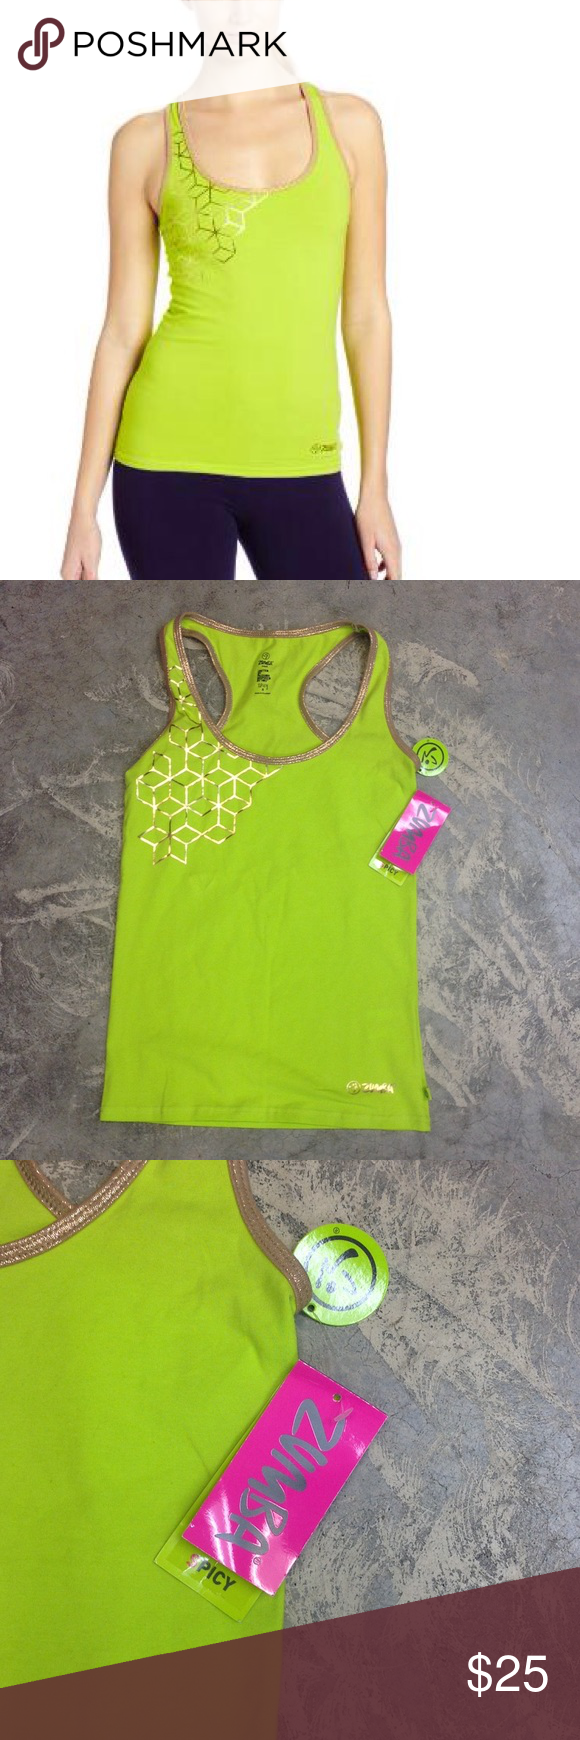 "ZUMBA ""El Fab Futuro Racerback"" Workout Top Y8 🎀 This workout tank top is a size Small in the color ""Love Me Lime"".  It's gold geometric design makes a pop in your workout! :). ***Brand new with tags! Zumba Fitness Tops Tank Tops"